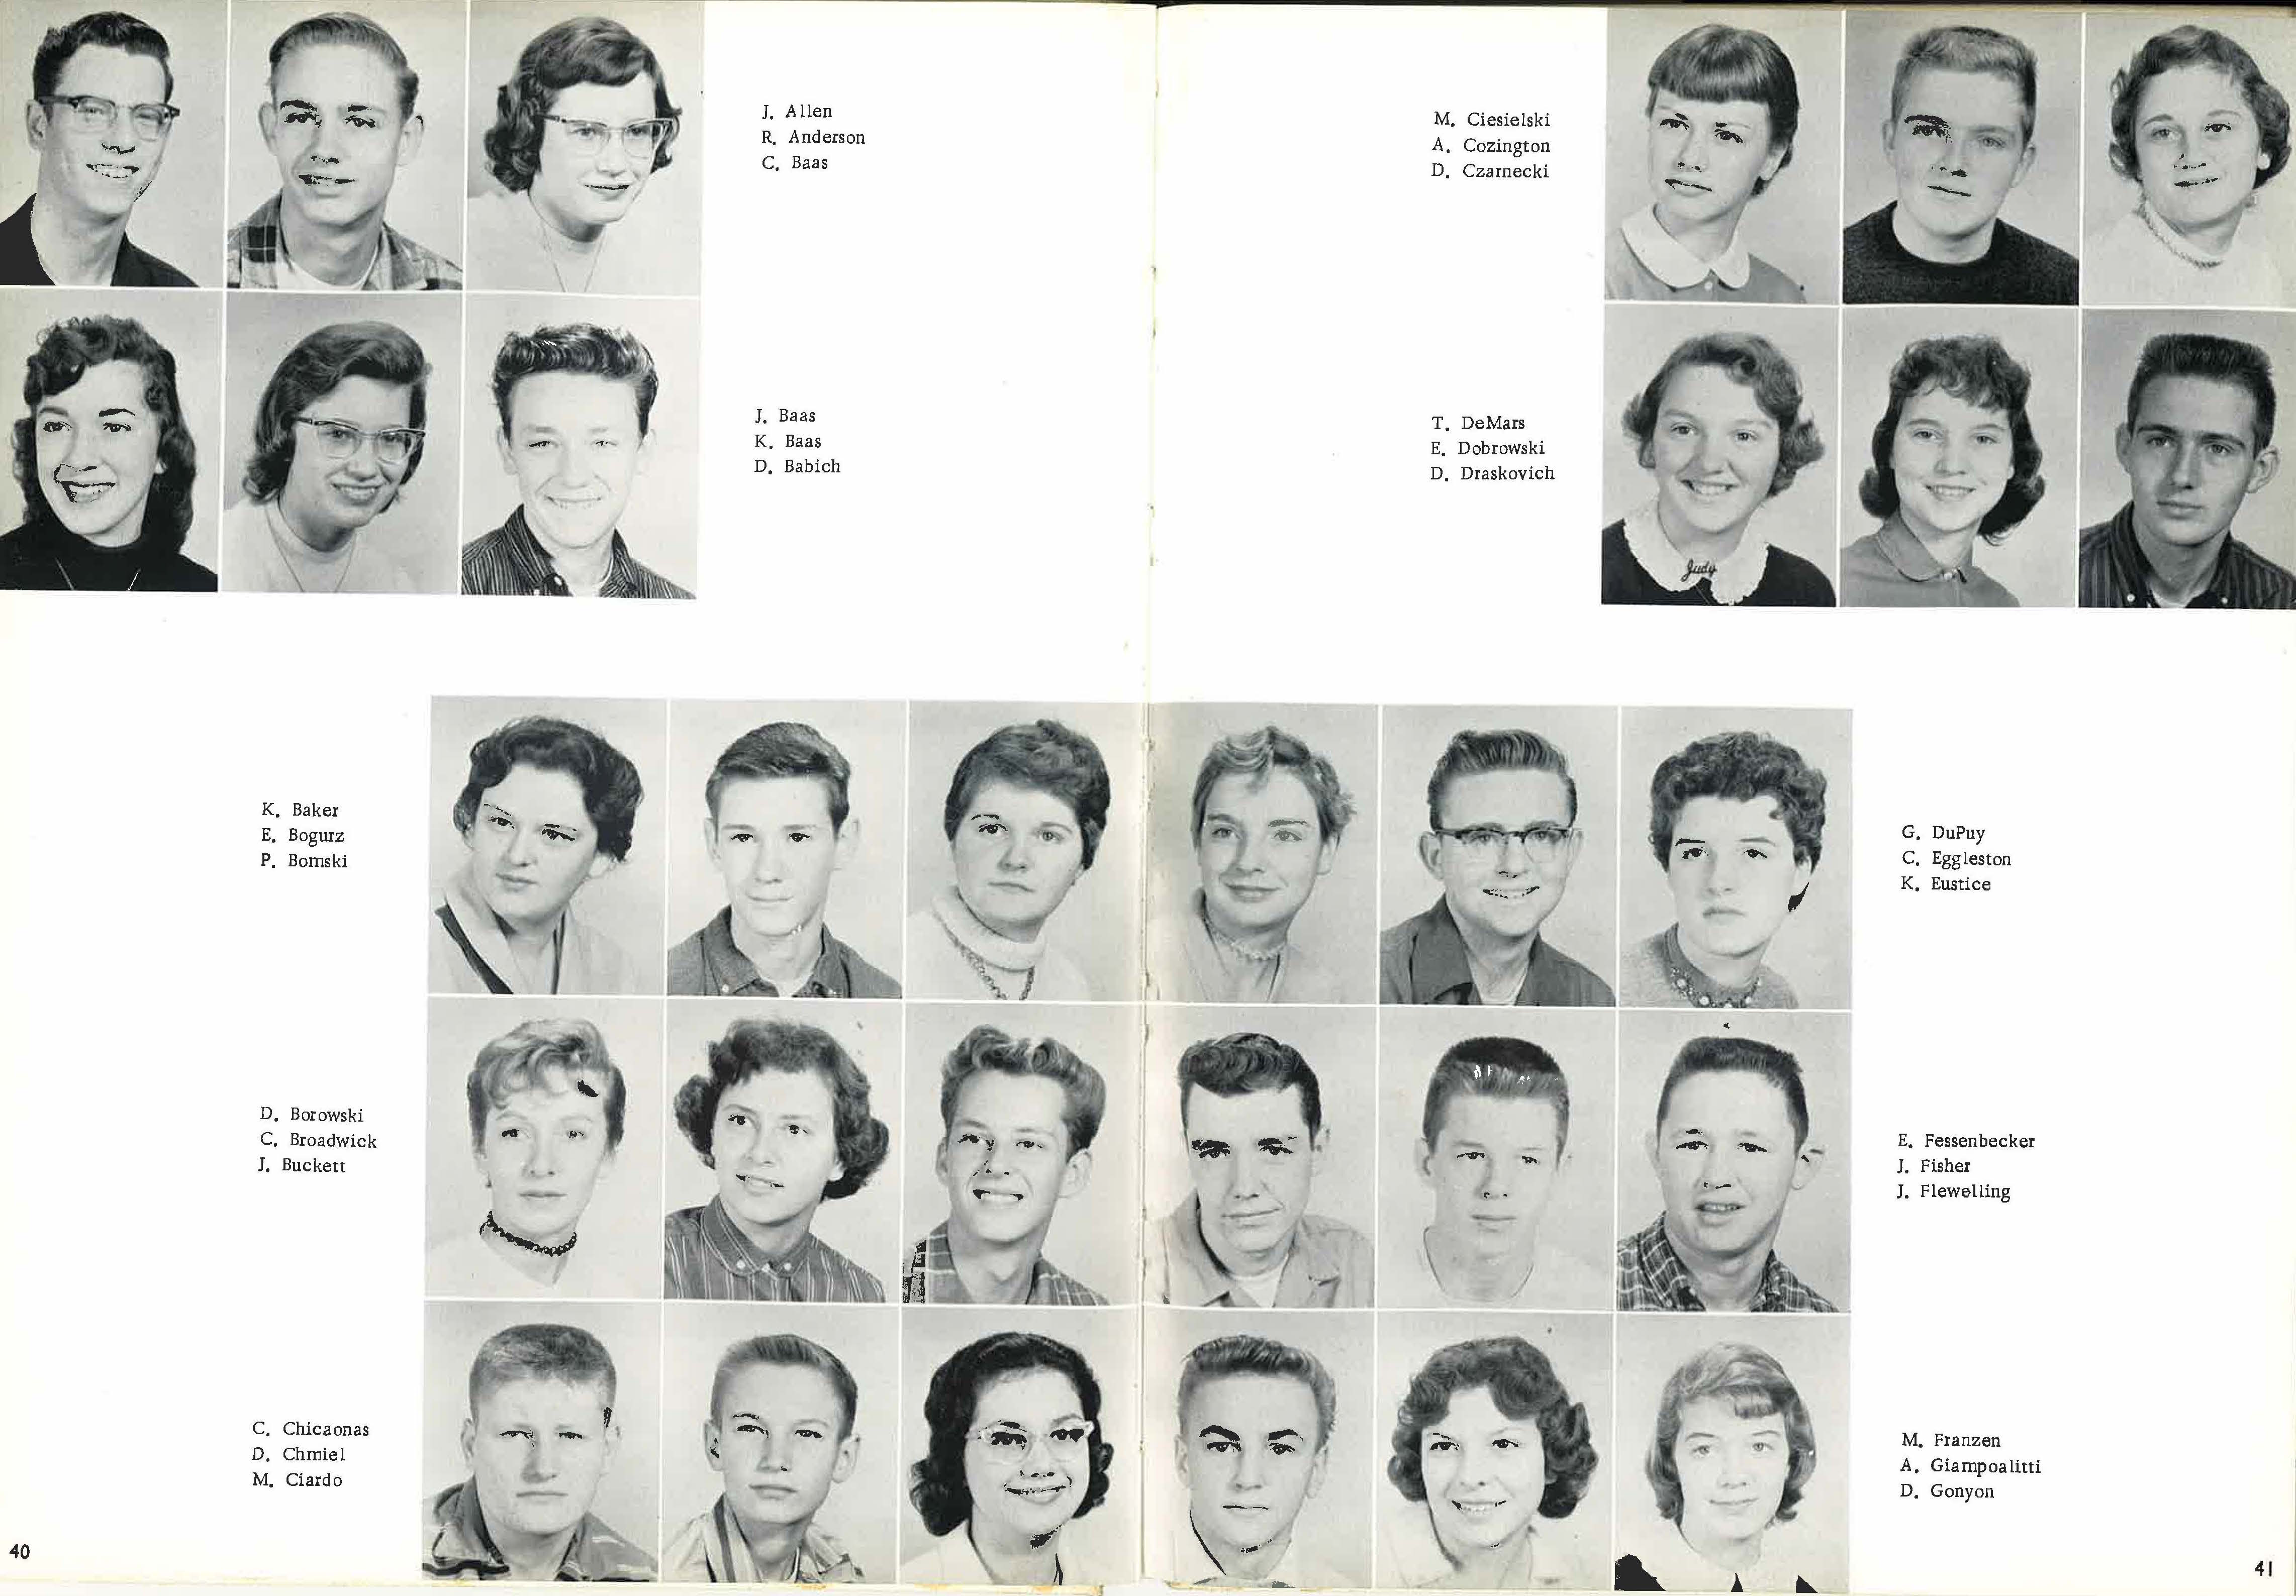 1958_Yearbook_40-41.jpg